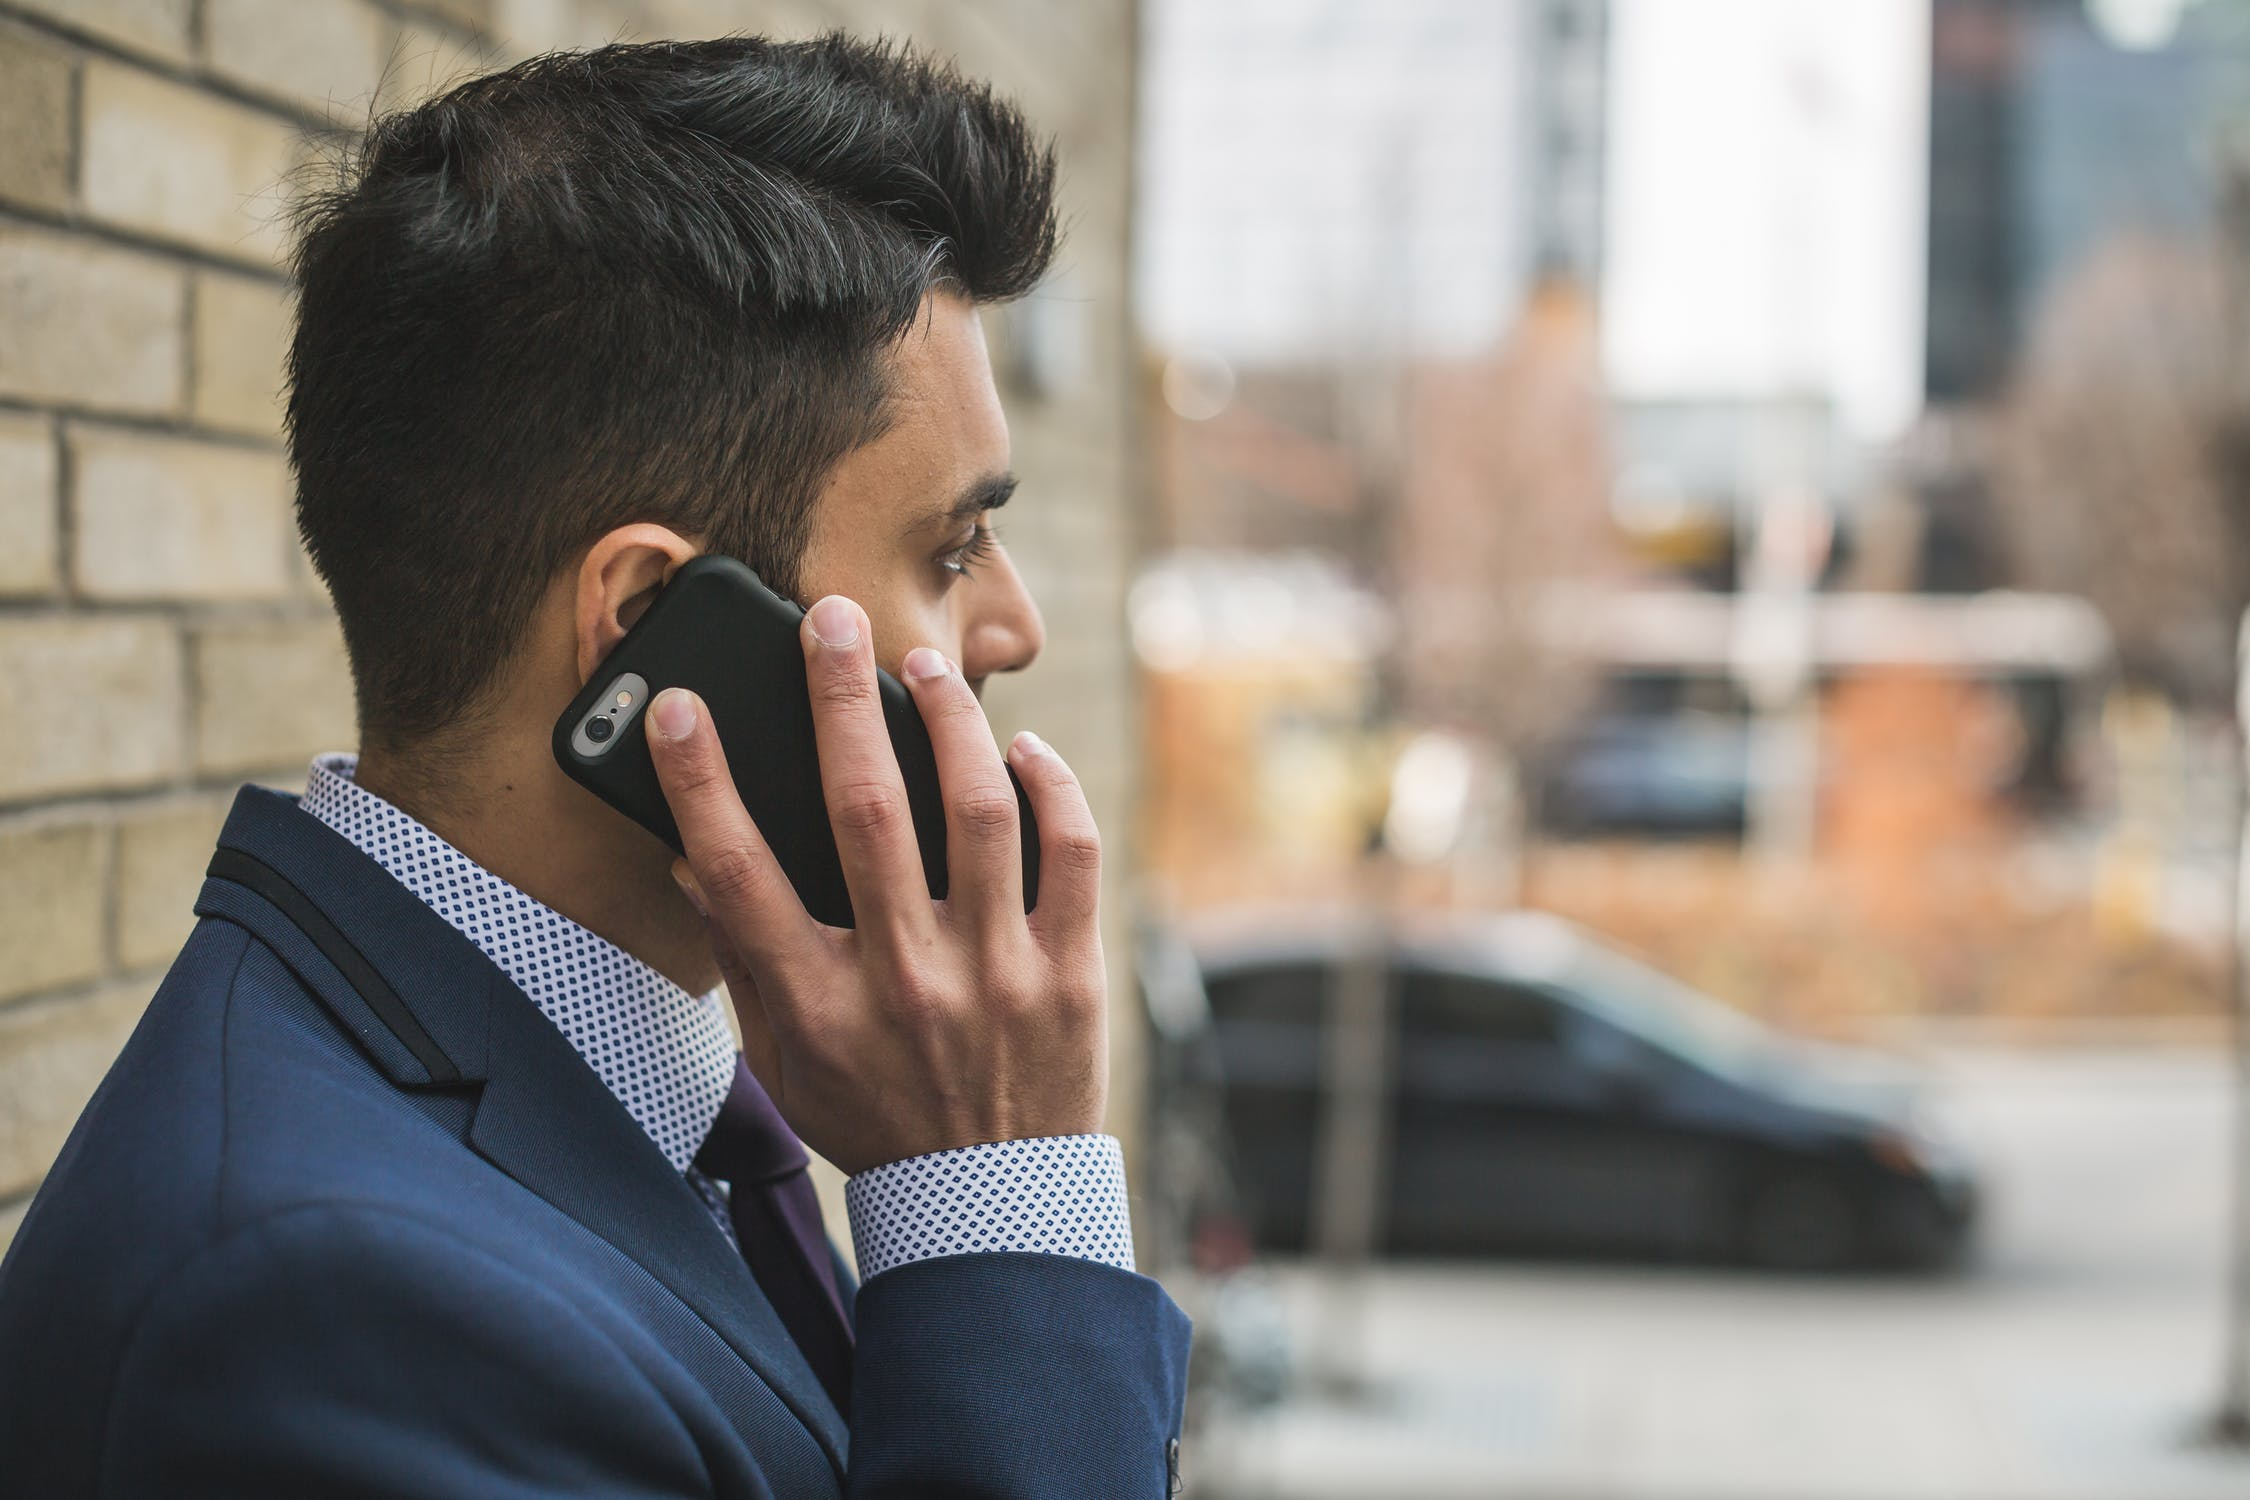 A person talking on the phone